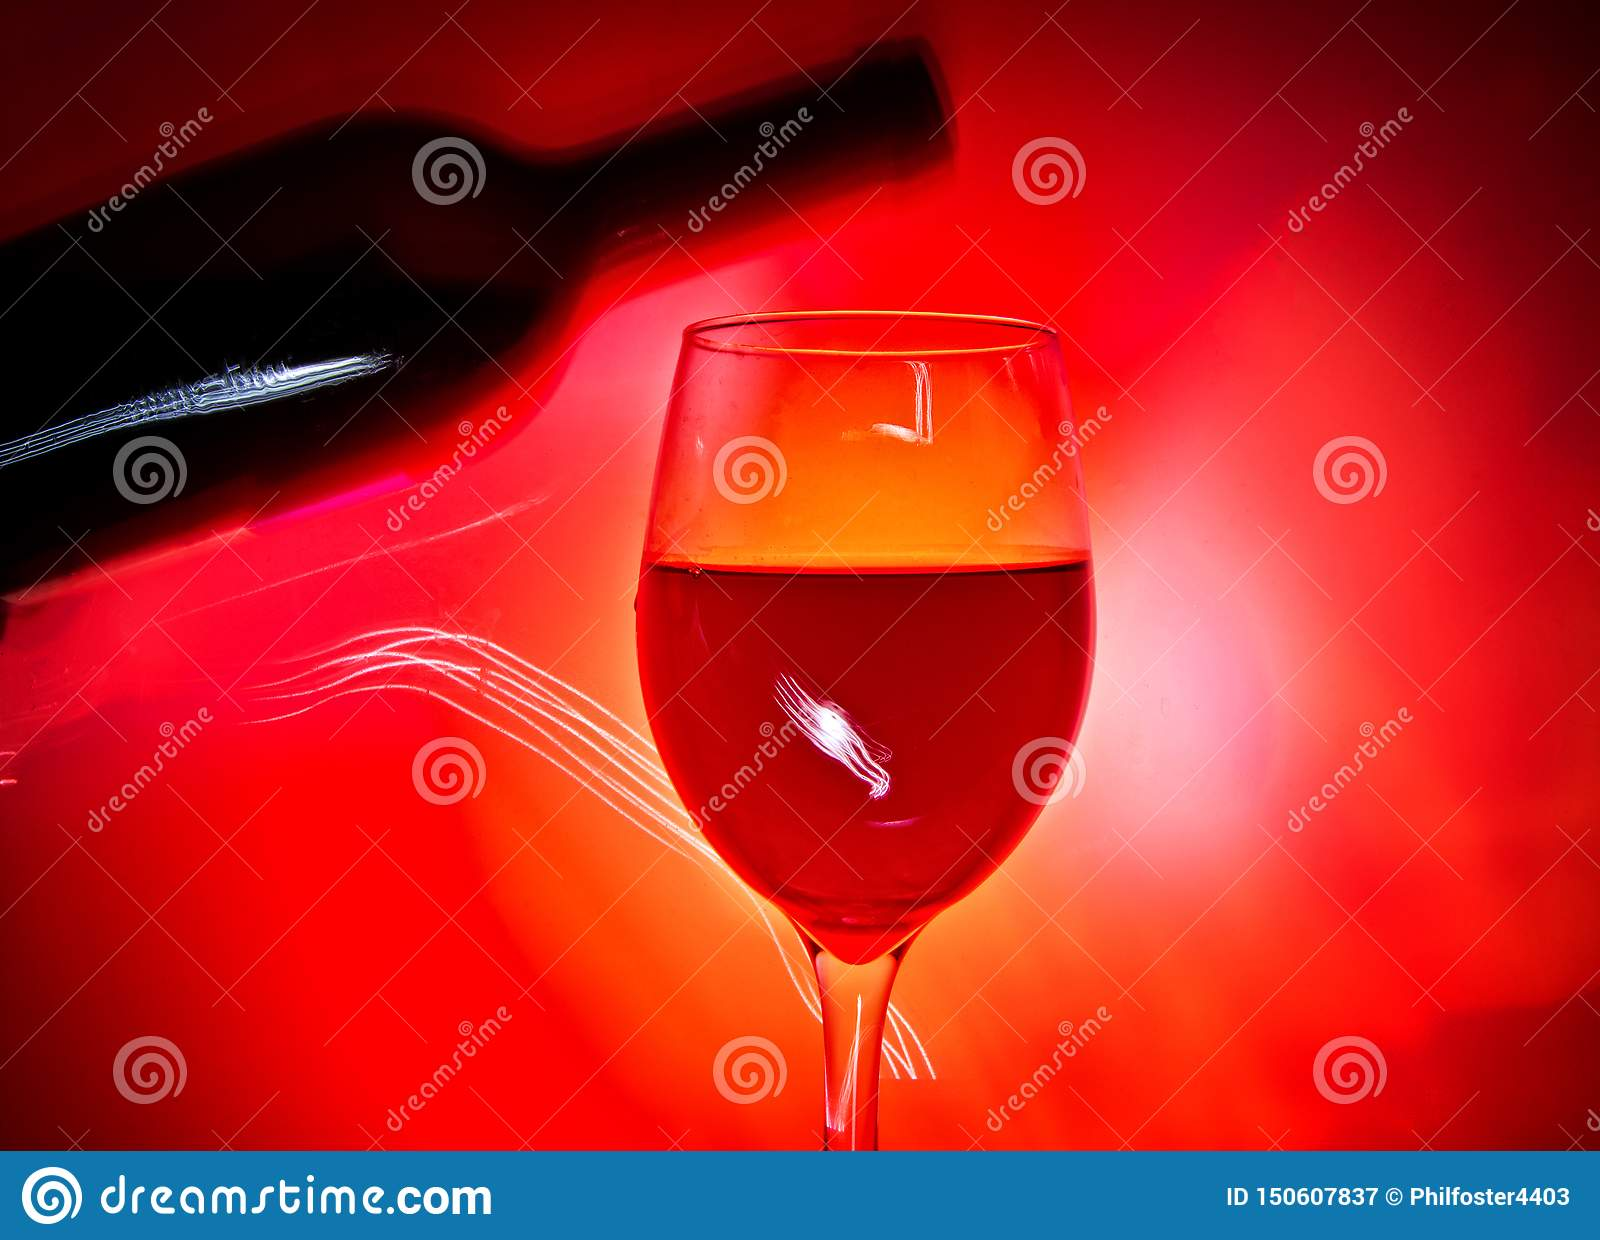 Another glass of wine